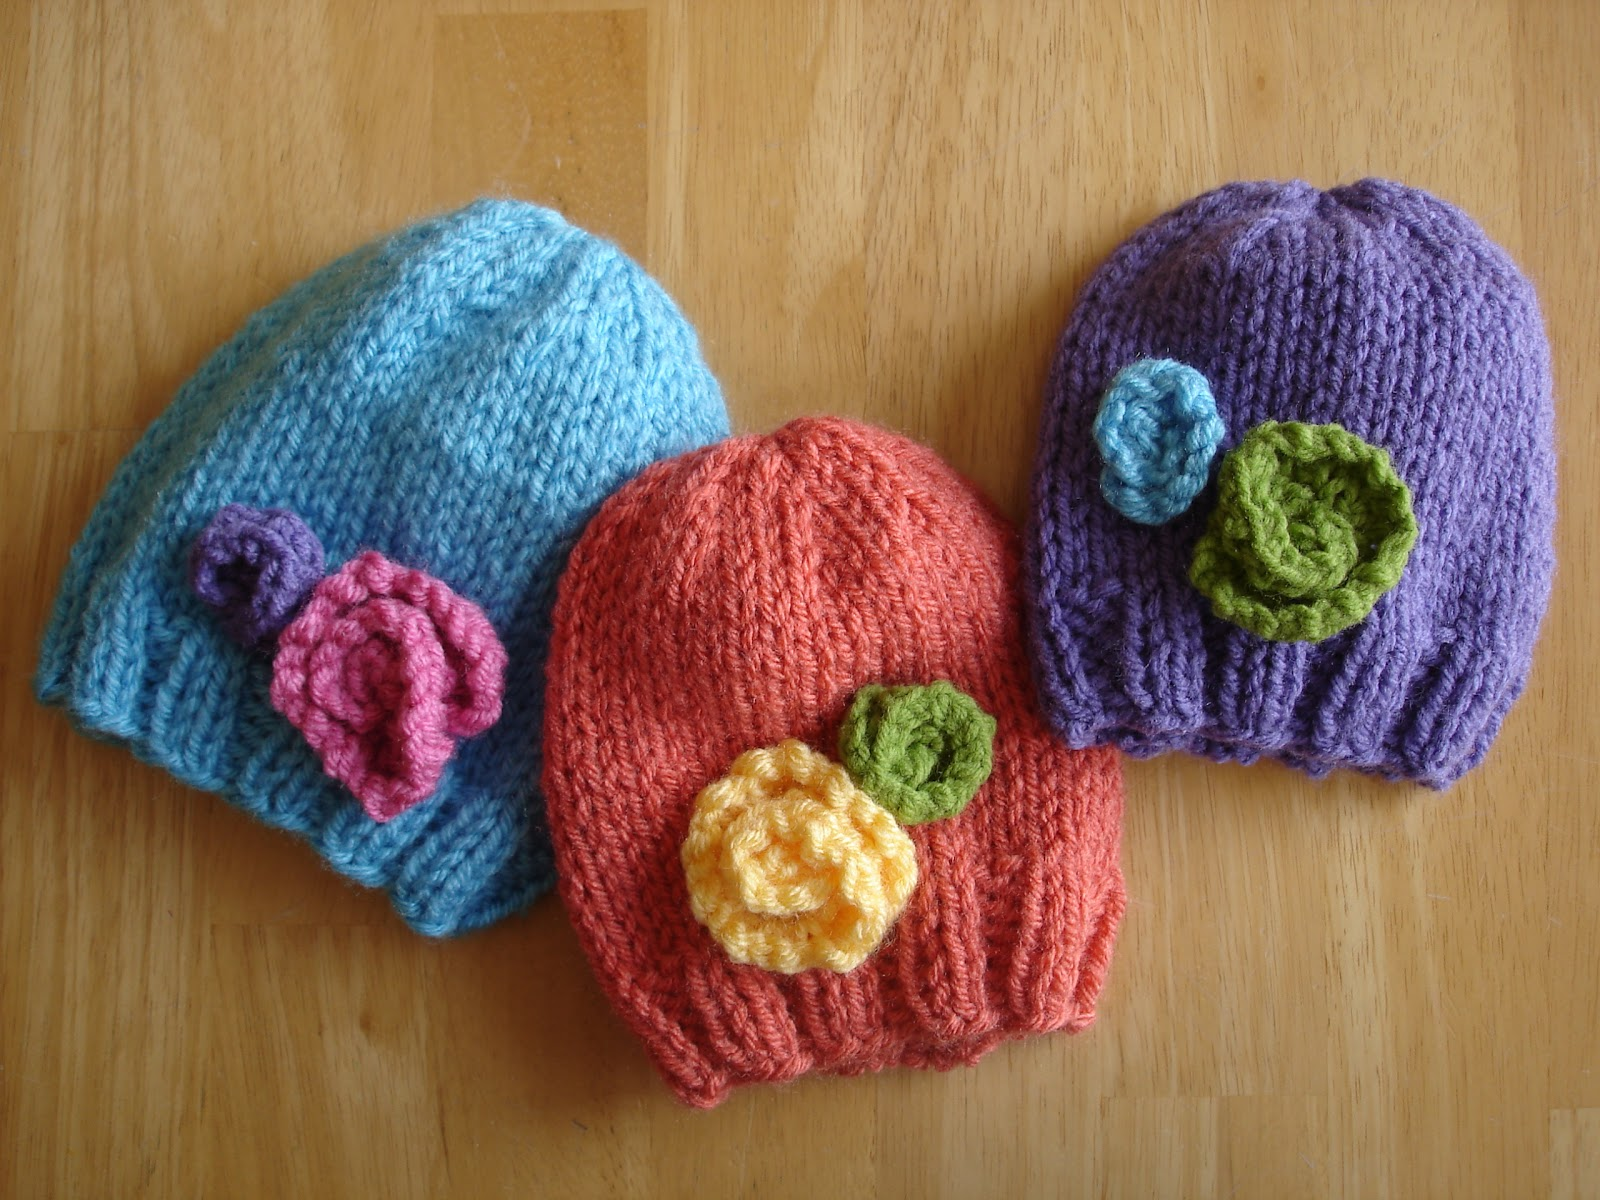 Patterns For Knitted Baby Hats : Fiber Flux: Free Knitting Pattern! Baby In Bloom Hats